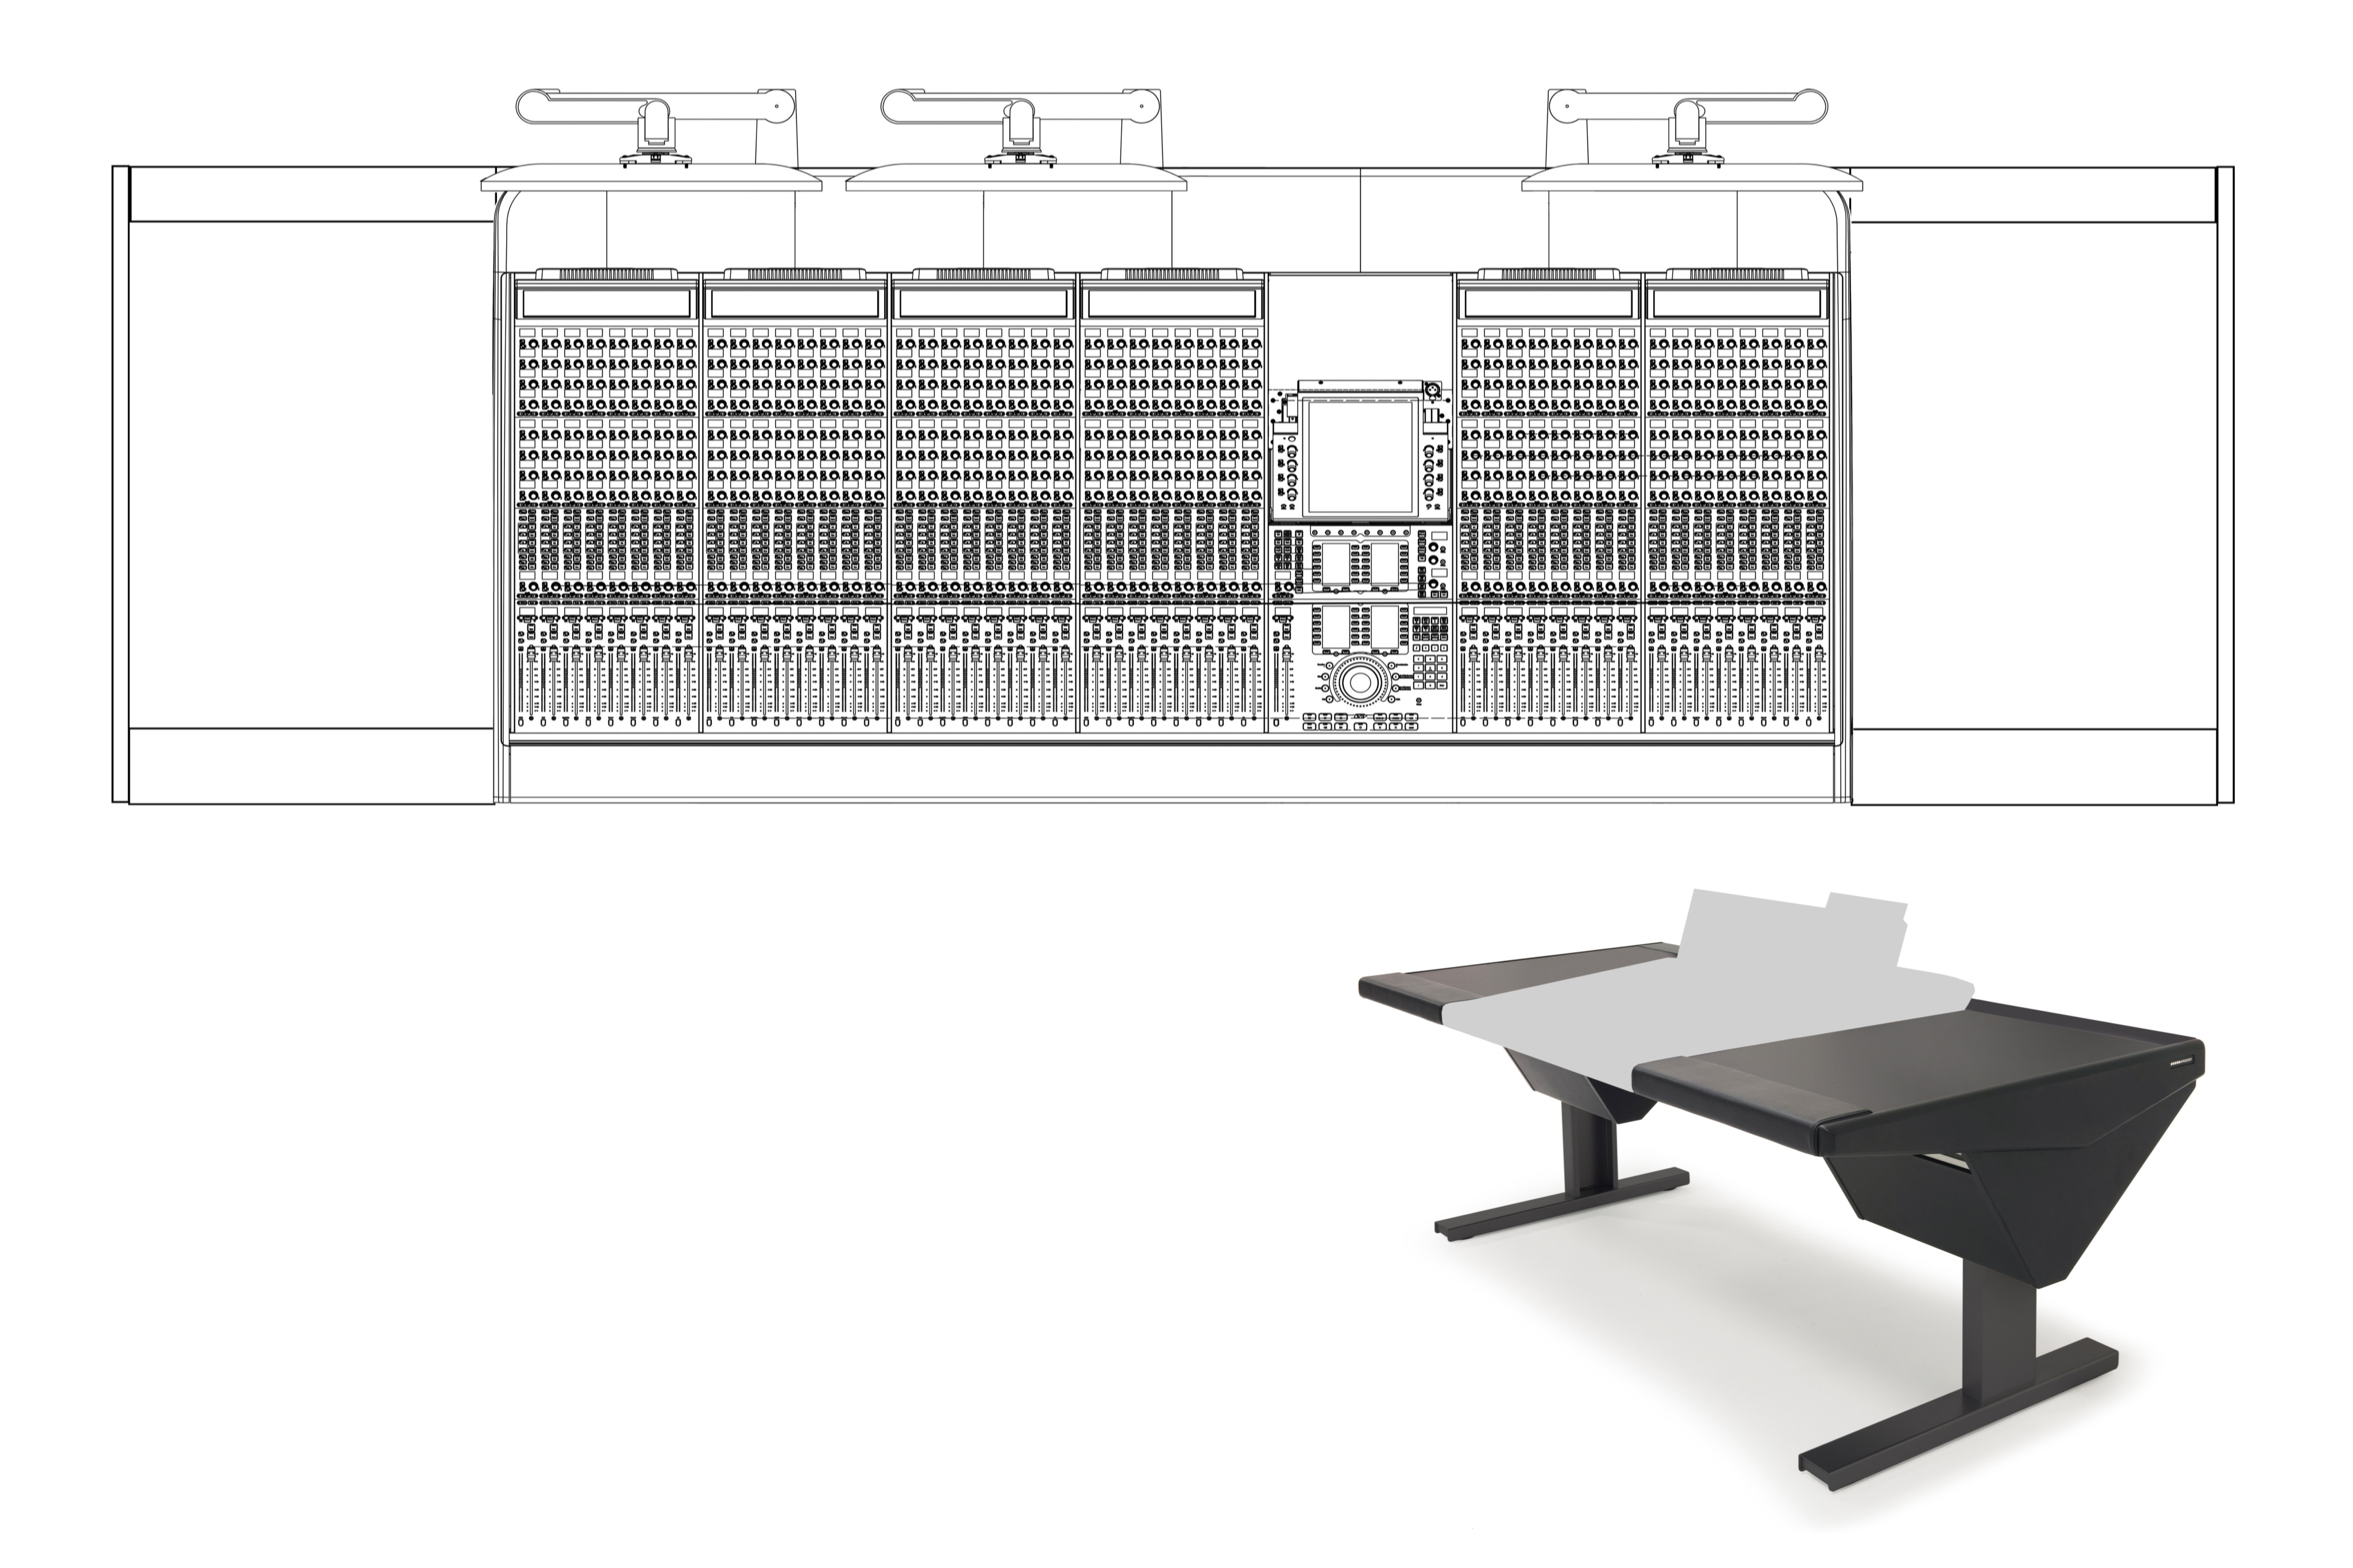 48 Fader System with Desk (L) and Desk (R)